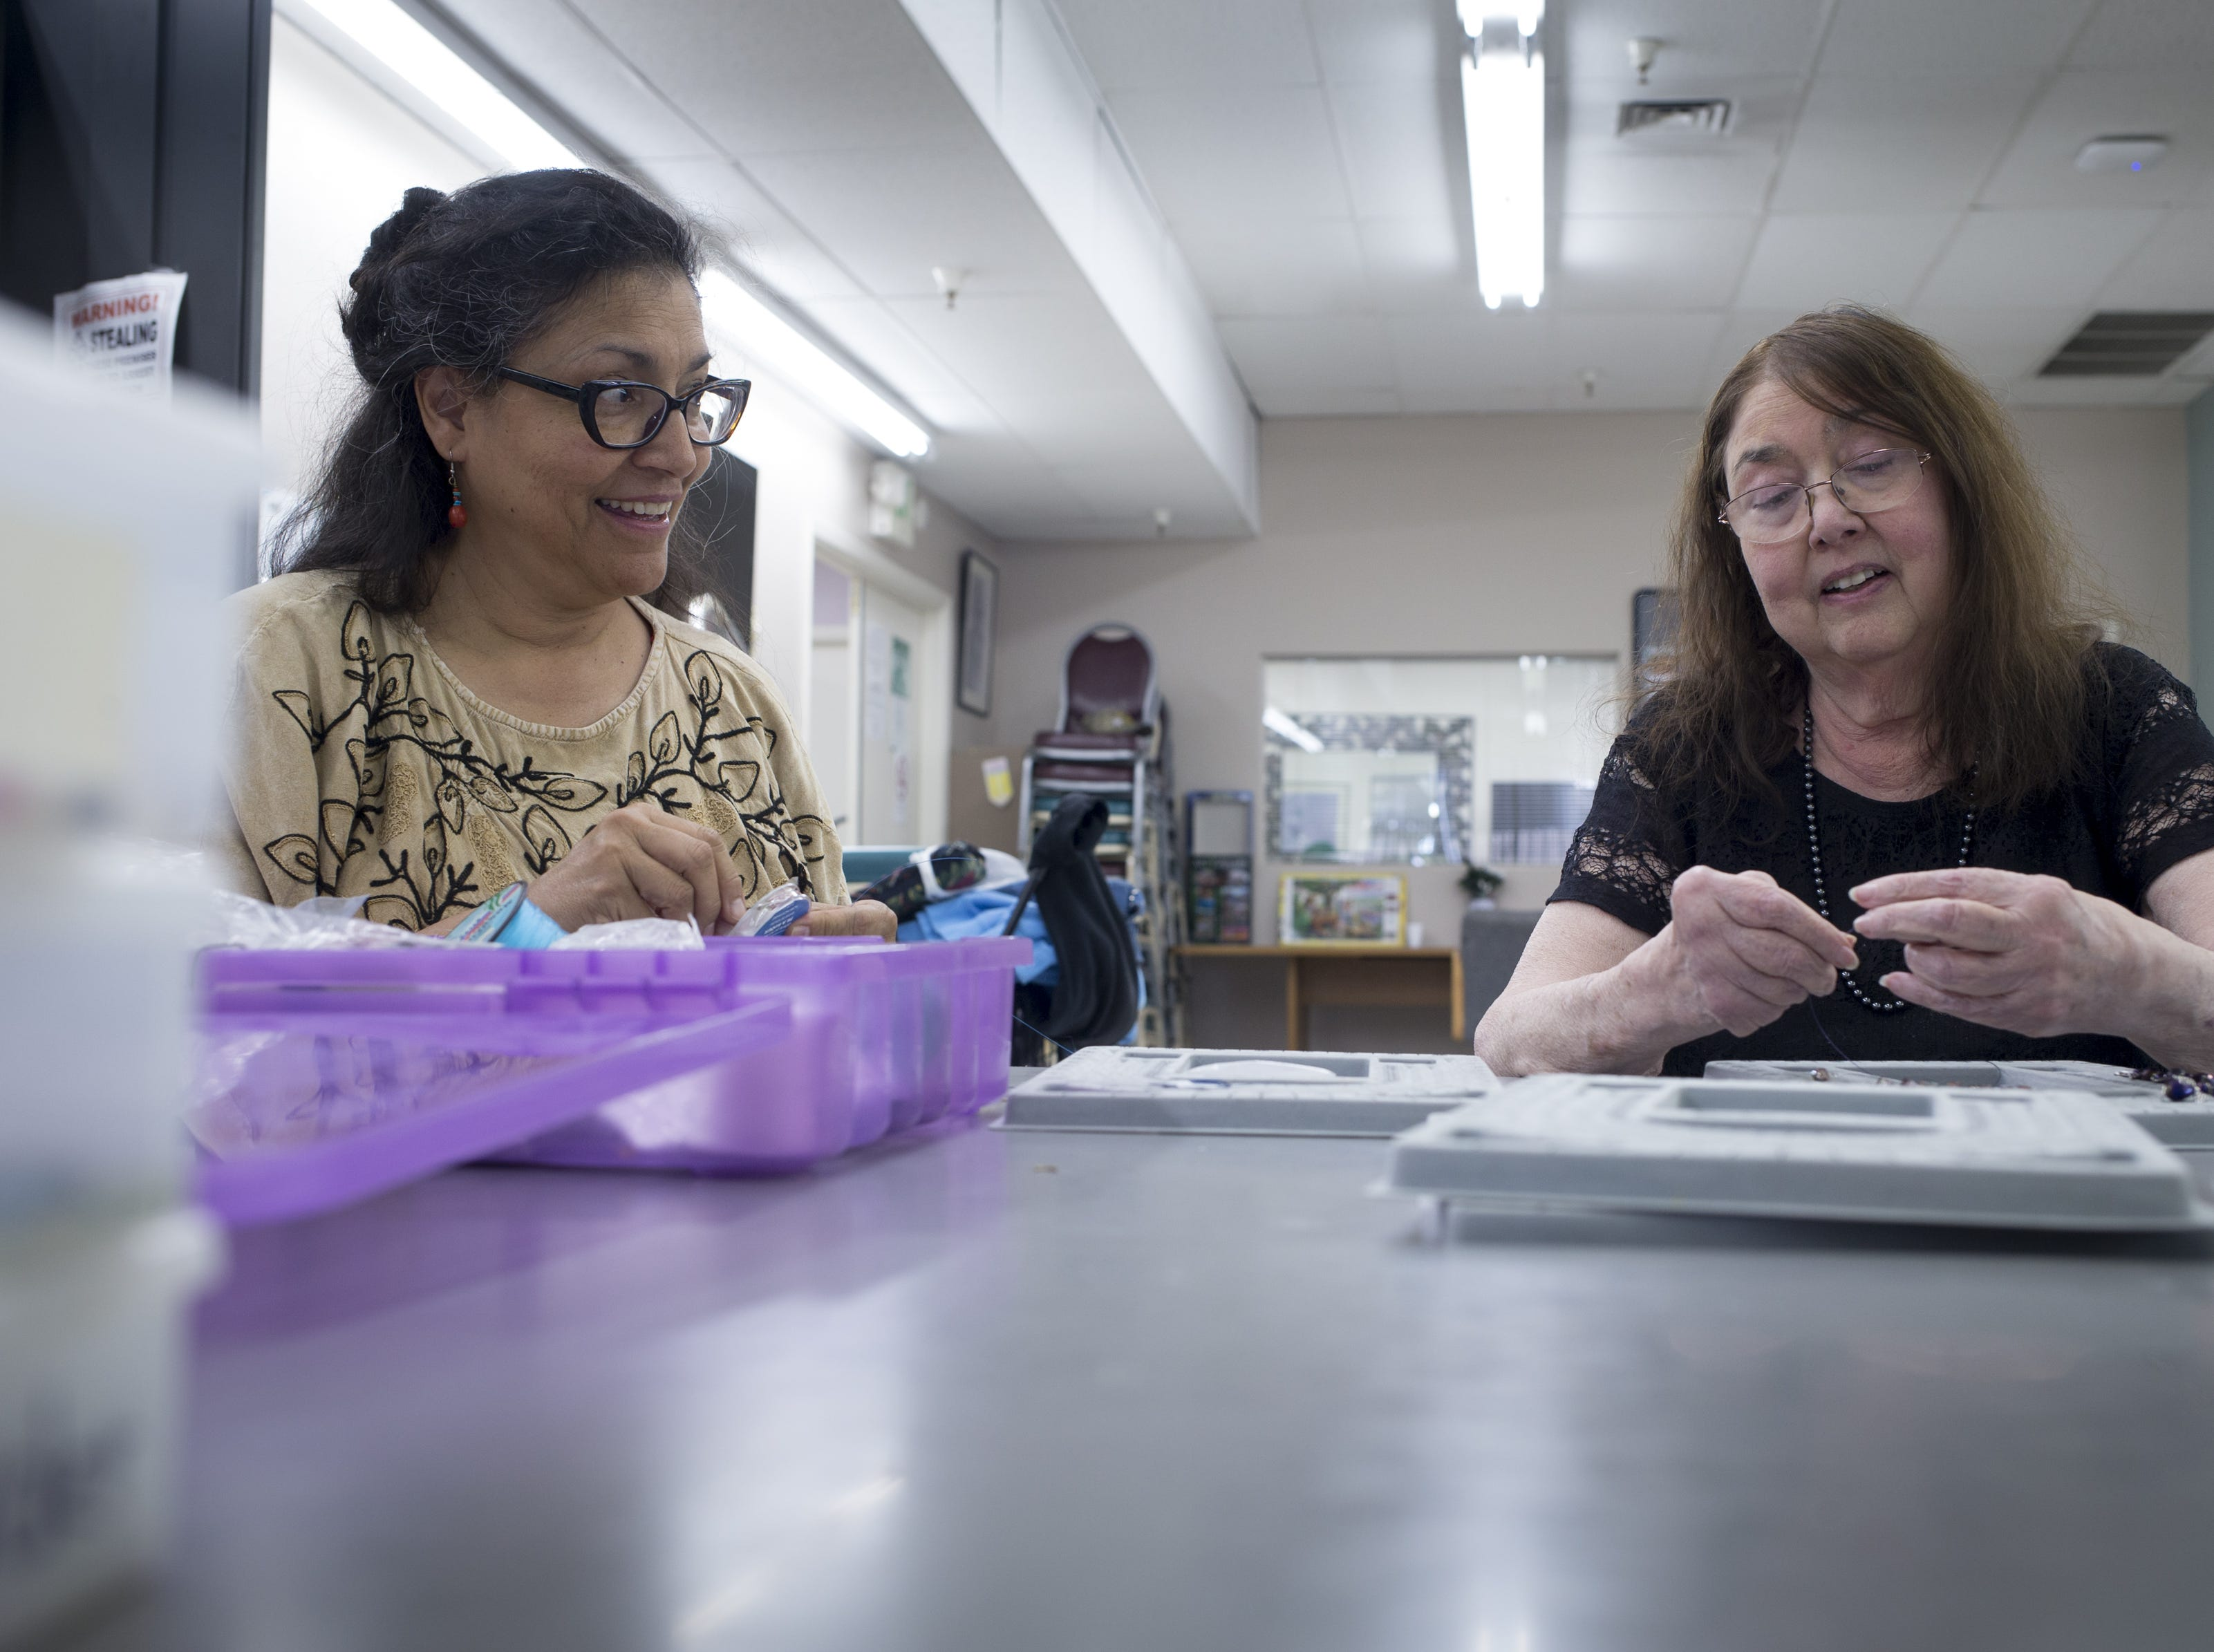 Barbara Cory (right) and Cynthia Fodness make jewelry, Dec. 12, 2018 at Phoenix Senior Opportunities, 1220 S. Seventh Ave. in Phoenix. Cory copes with asthma that can flare up when smog worsens in Phoenix's winter months.